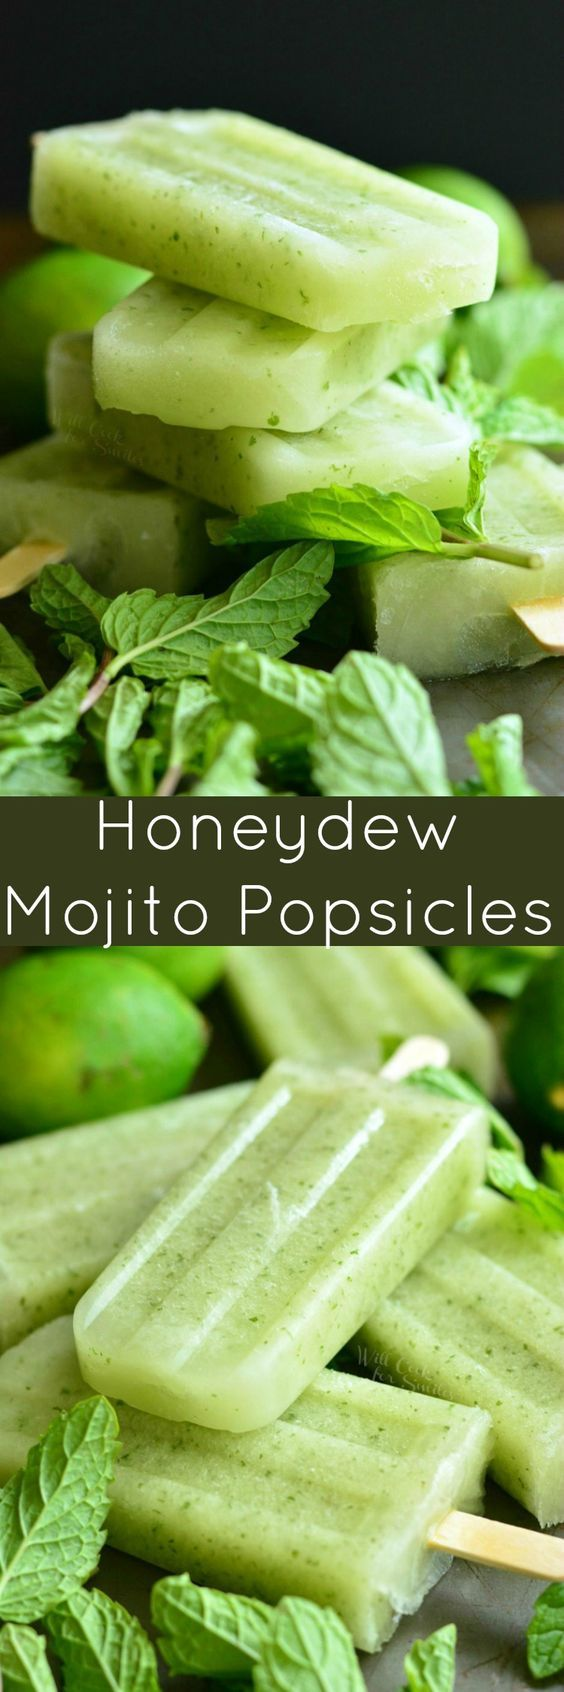 Honeydew Mojito Popsicles ~ these delicious and refreshing mojito popsicles are made with sweet, juicy honeydew melon, fresh lime juice, and mint...and you can easily turn them into boozy pops with rum!